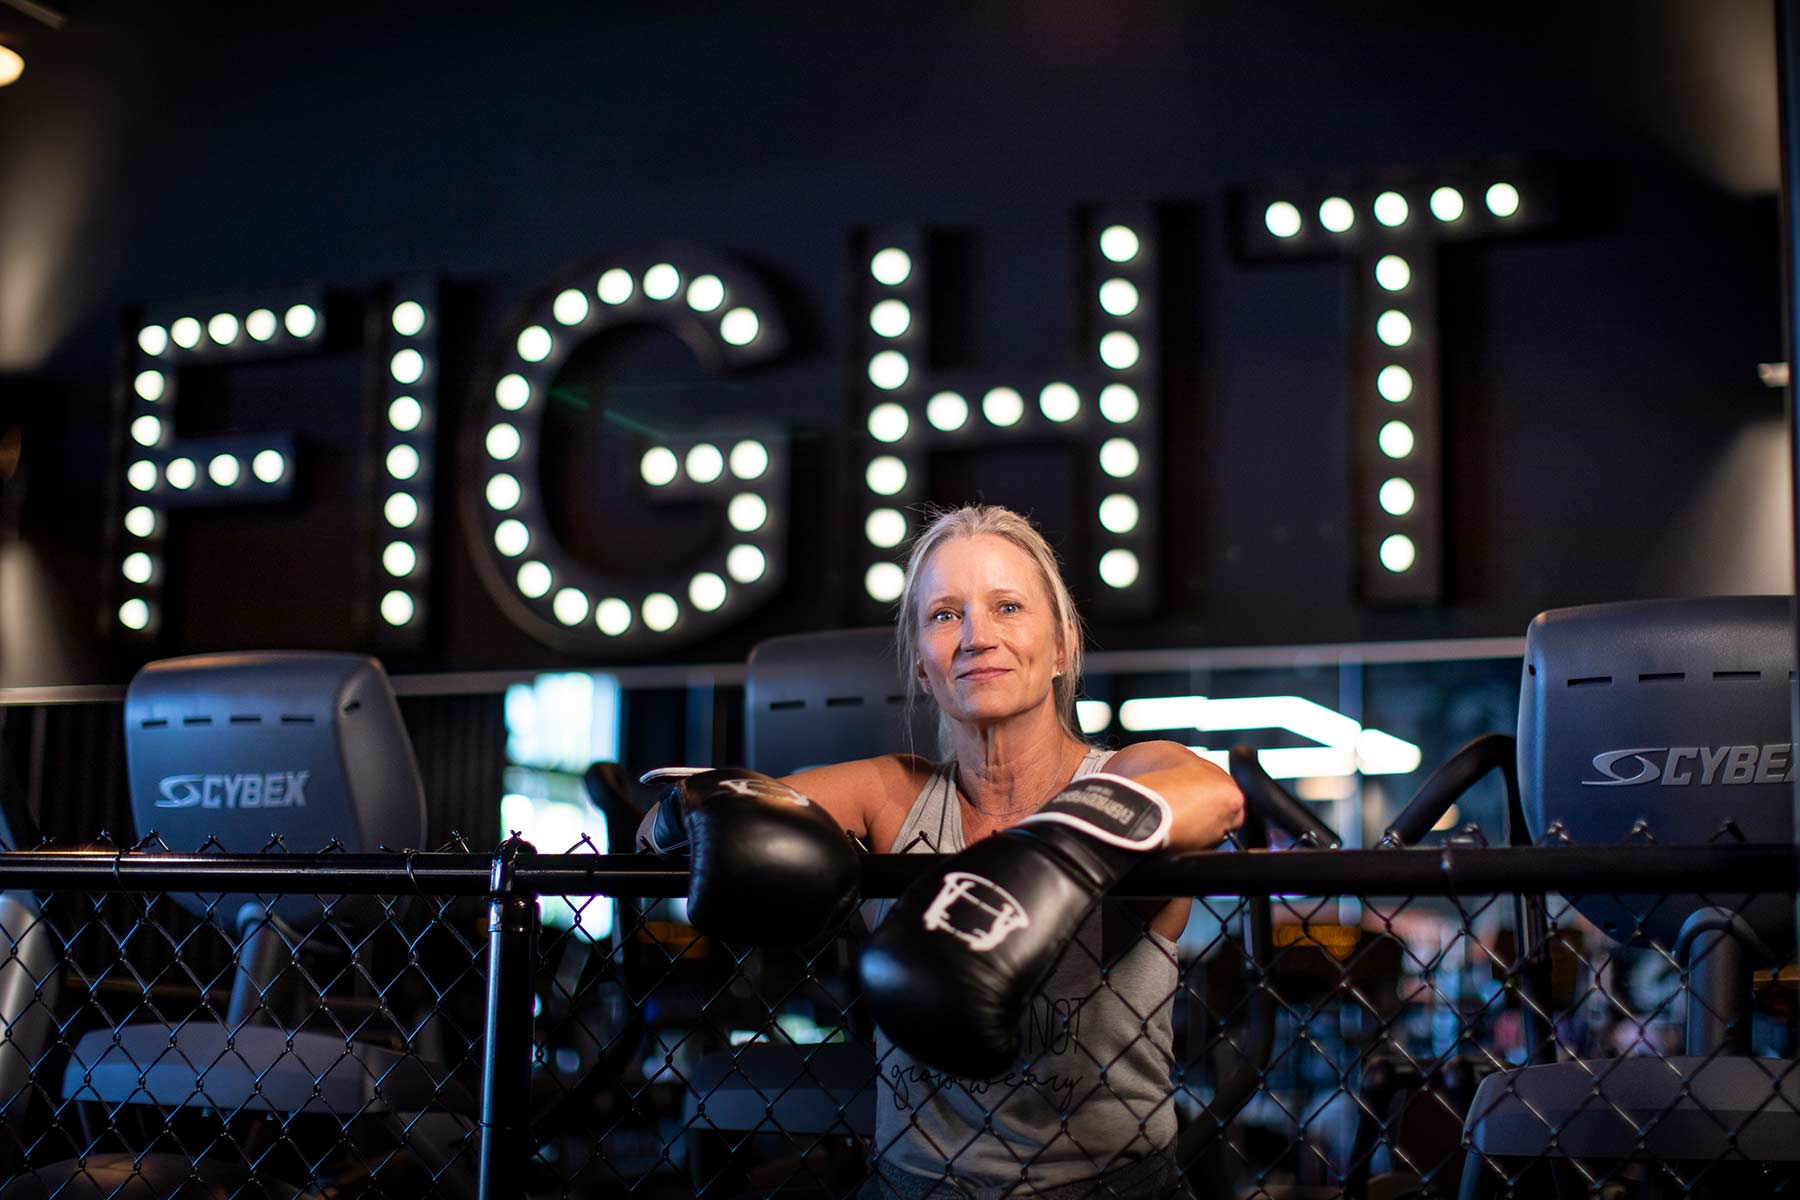 Lindi wears boxing gloves and rests on a chain link fence in front of large light up letters spelling the word FIGHT behind her.